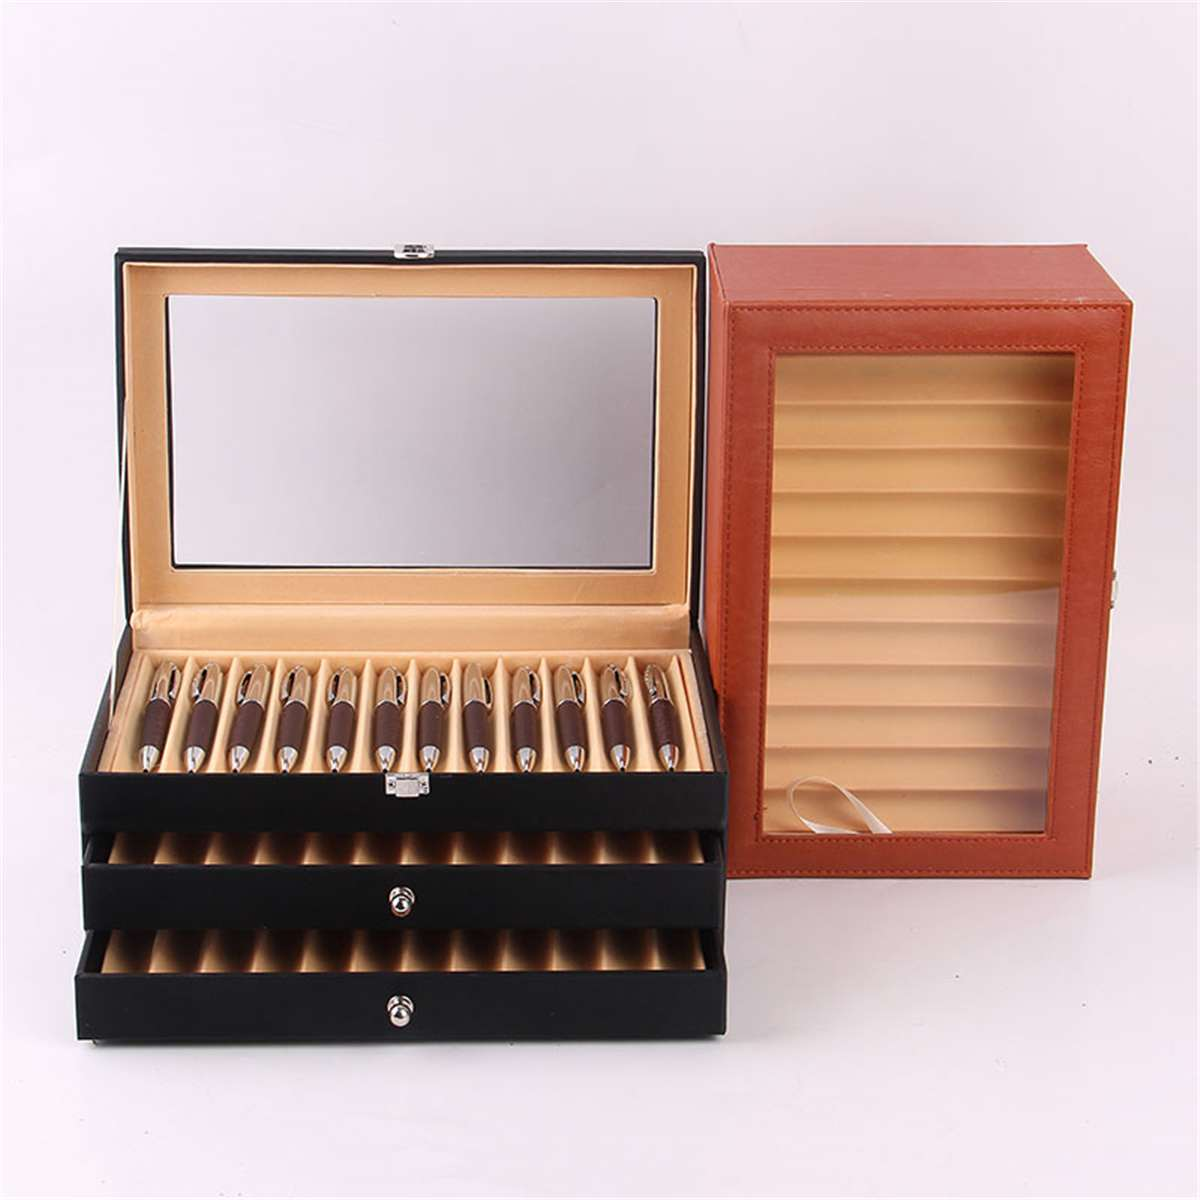 36 Pens Holders 3 Layer Pen Box Large-capacity PU Leather  Box Fountain Pen Pencil Case Display Desktop Storage Case